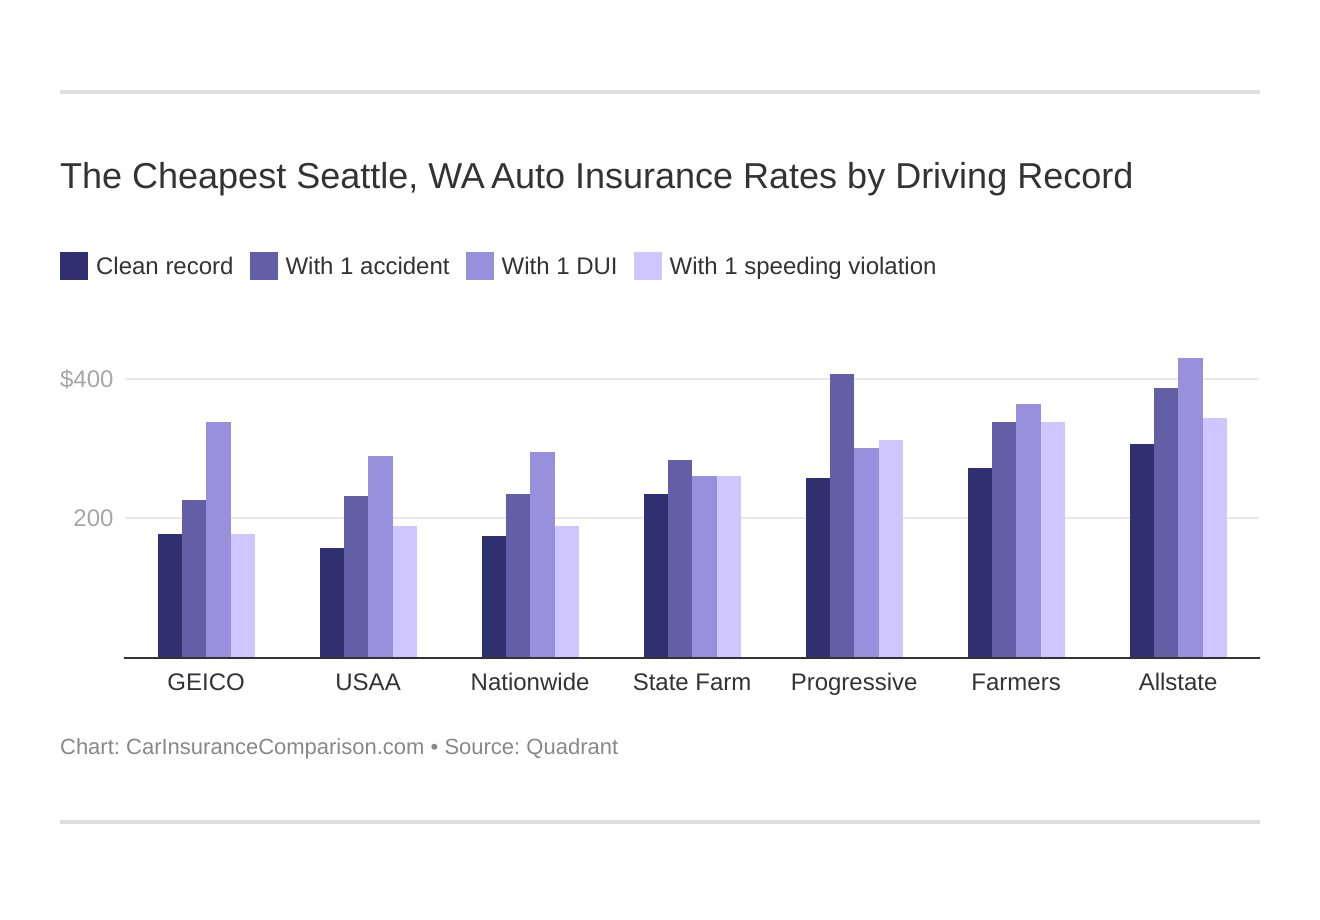 The Cheapest Seattle, WA Auto Insurance Rates by Driving Record